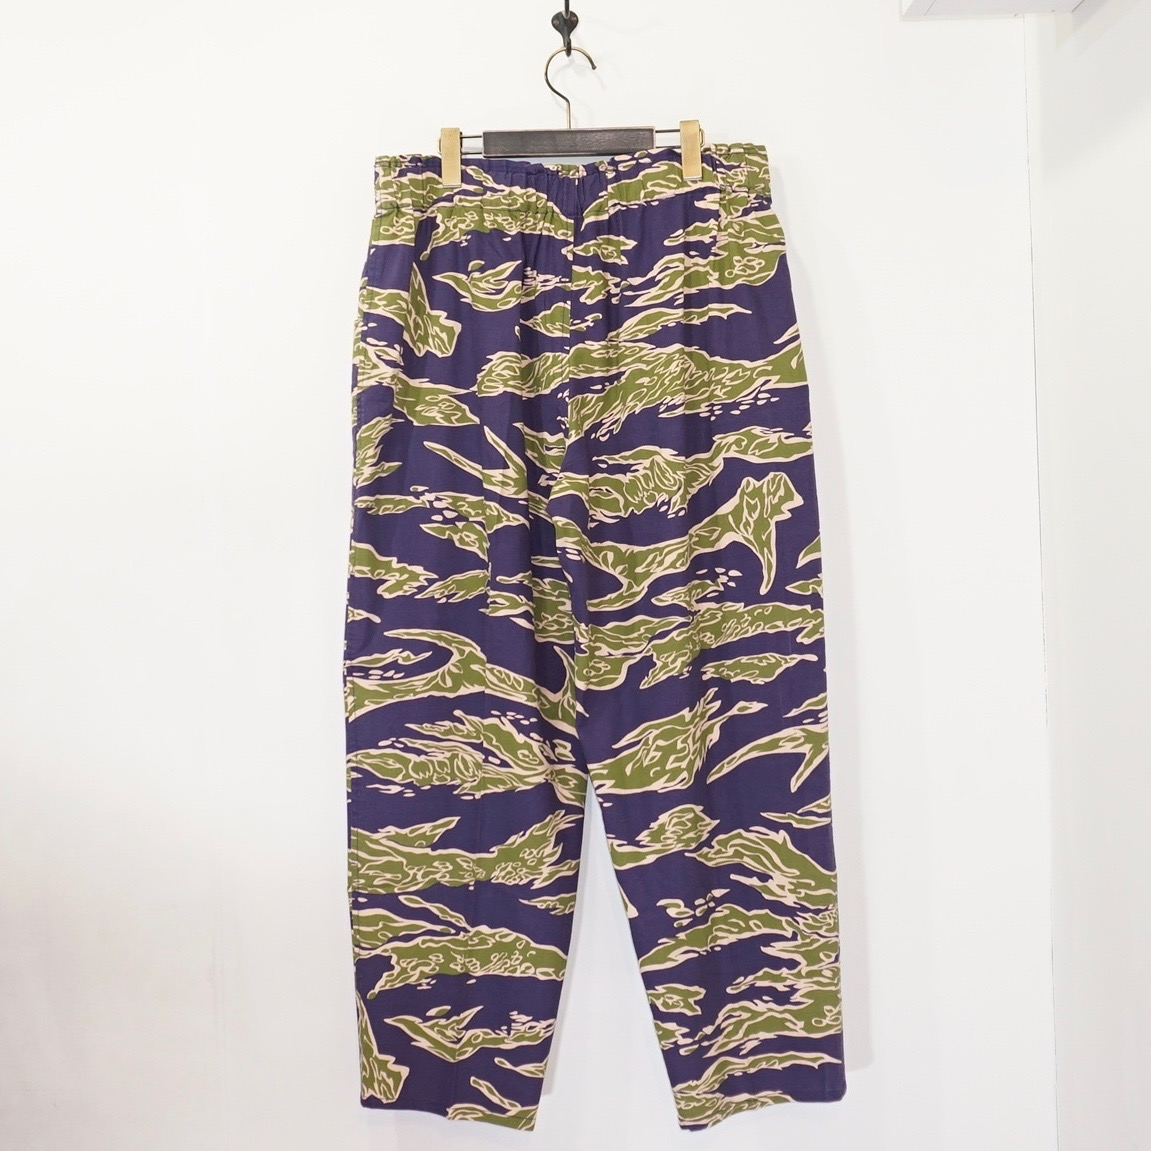 SOUTH2WEST8(サウスツーウエストエイト) | Army String Pant - Flannel Pt. - Tiger